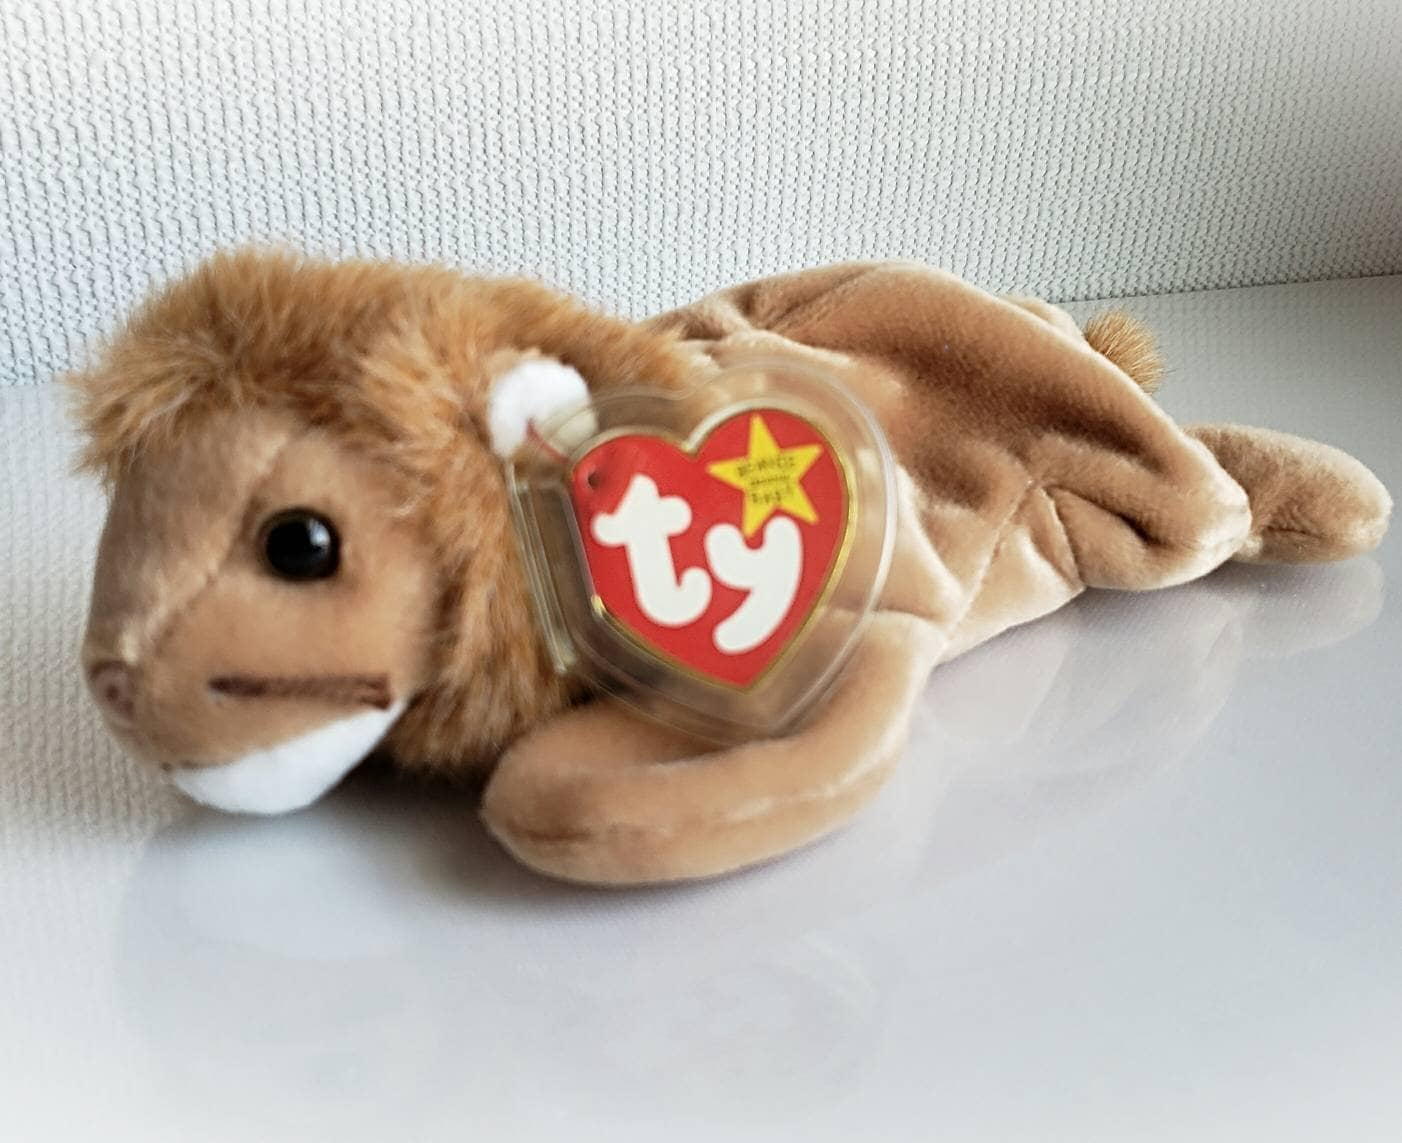 50305b8a1fd Ty Beanie Baby ROARY The Lion White and Brown Plush Toy Rare